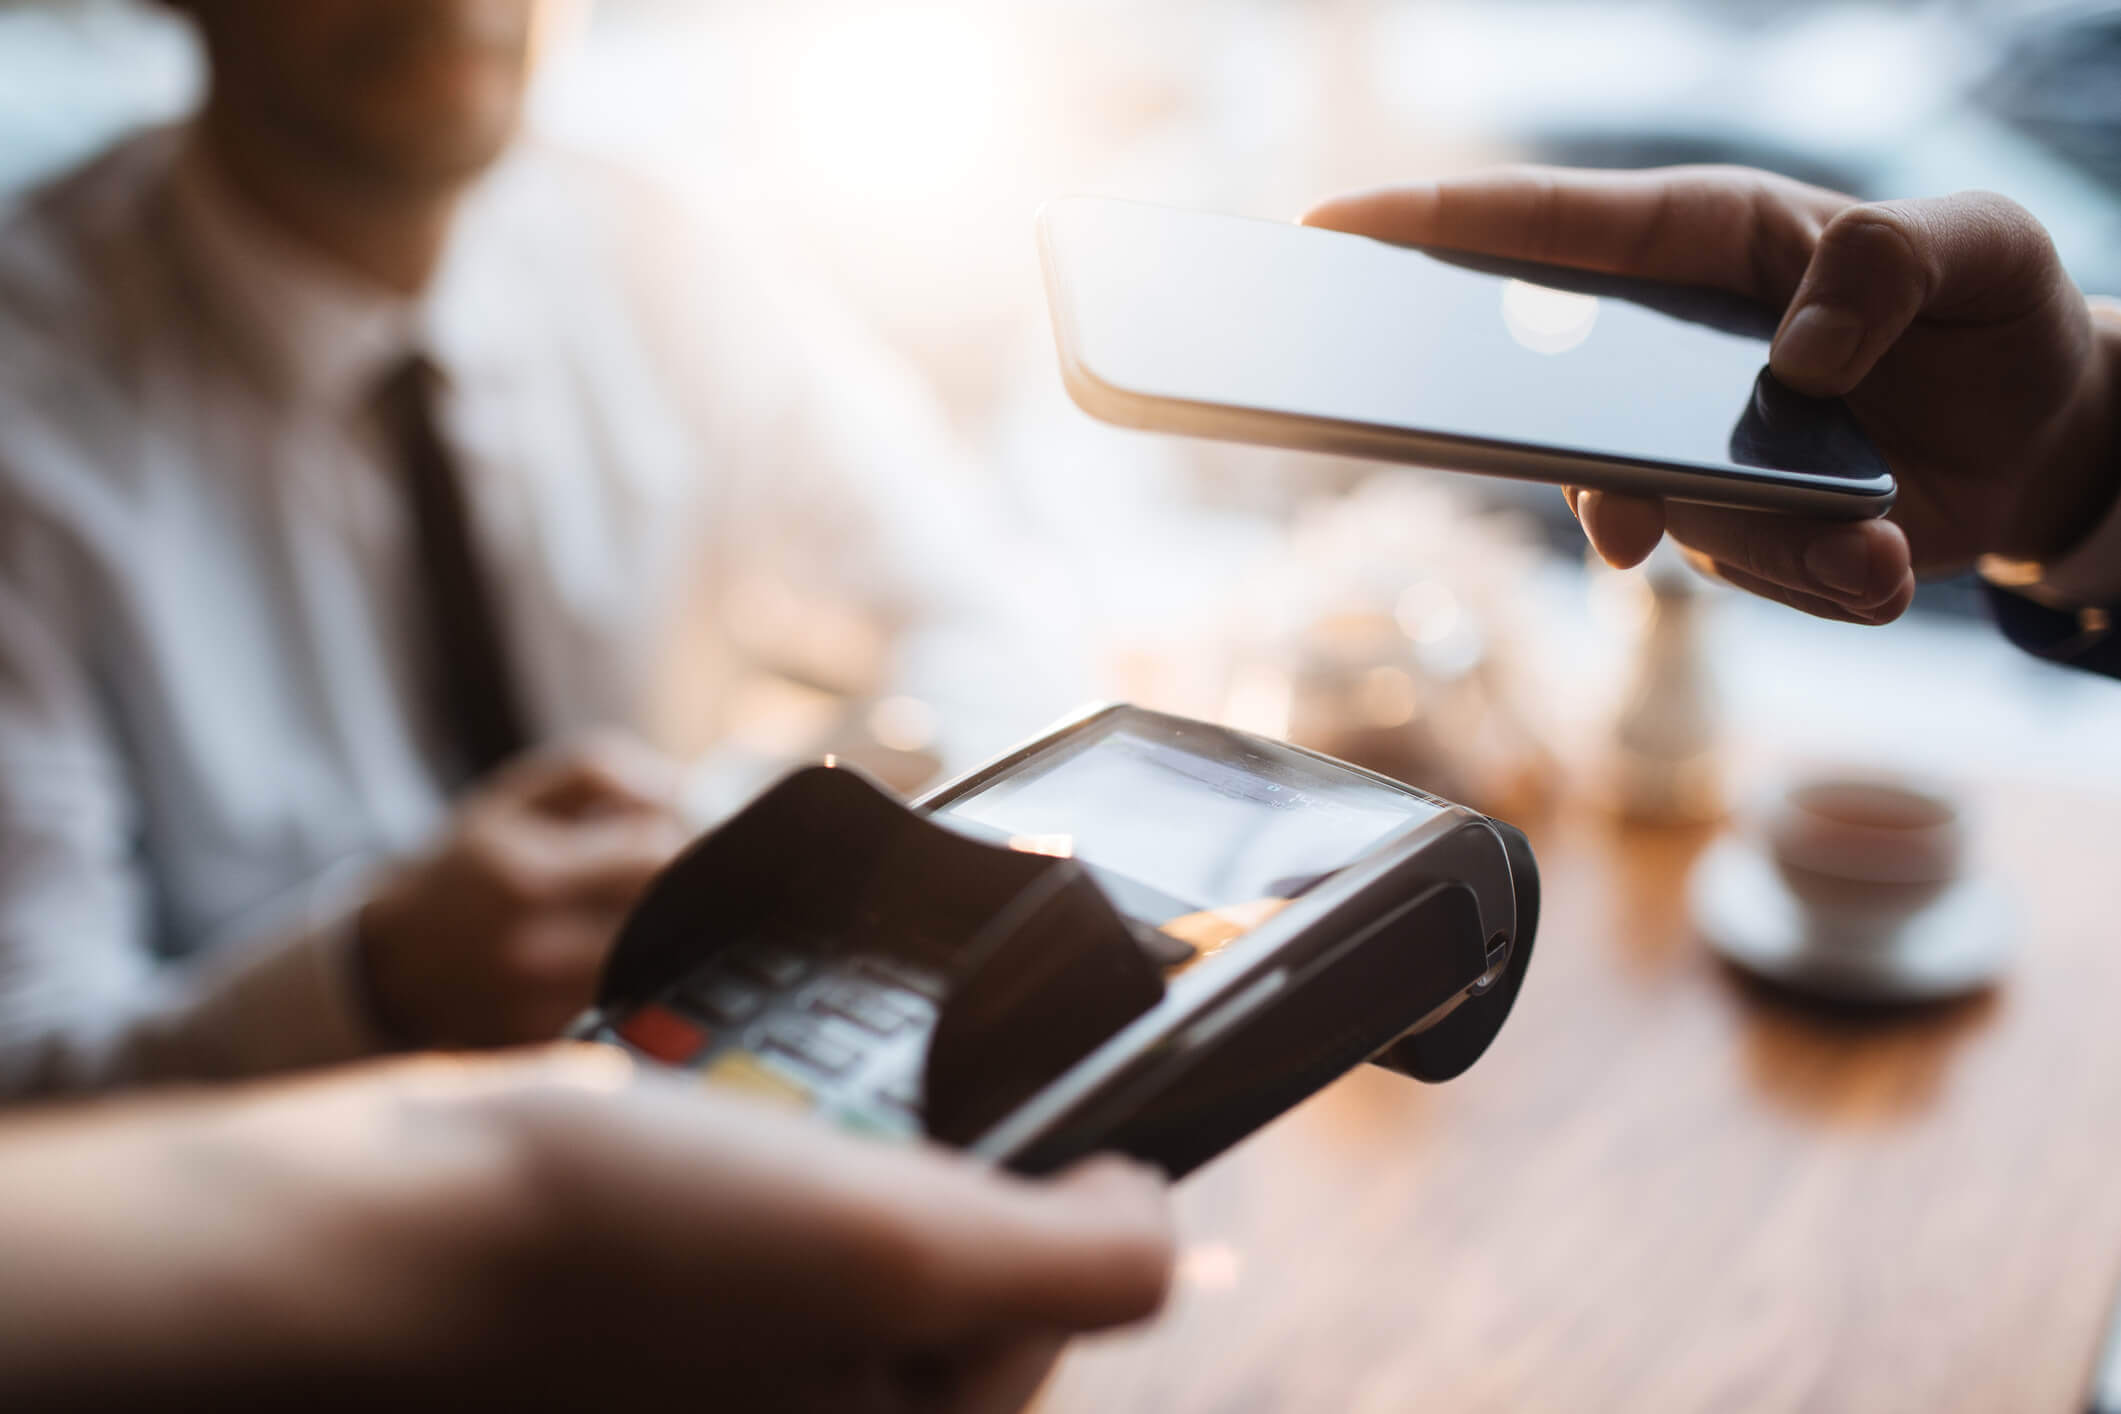 Are mobile payments ever really secure?